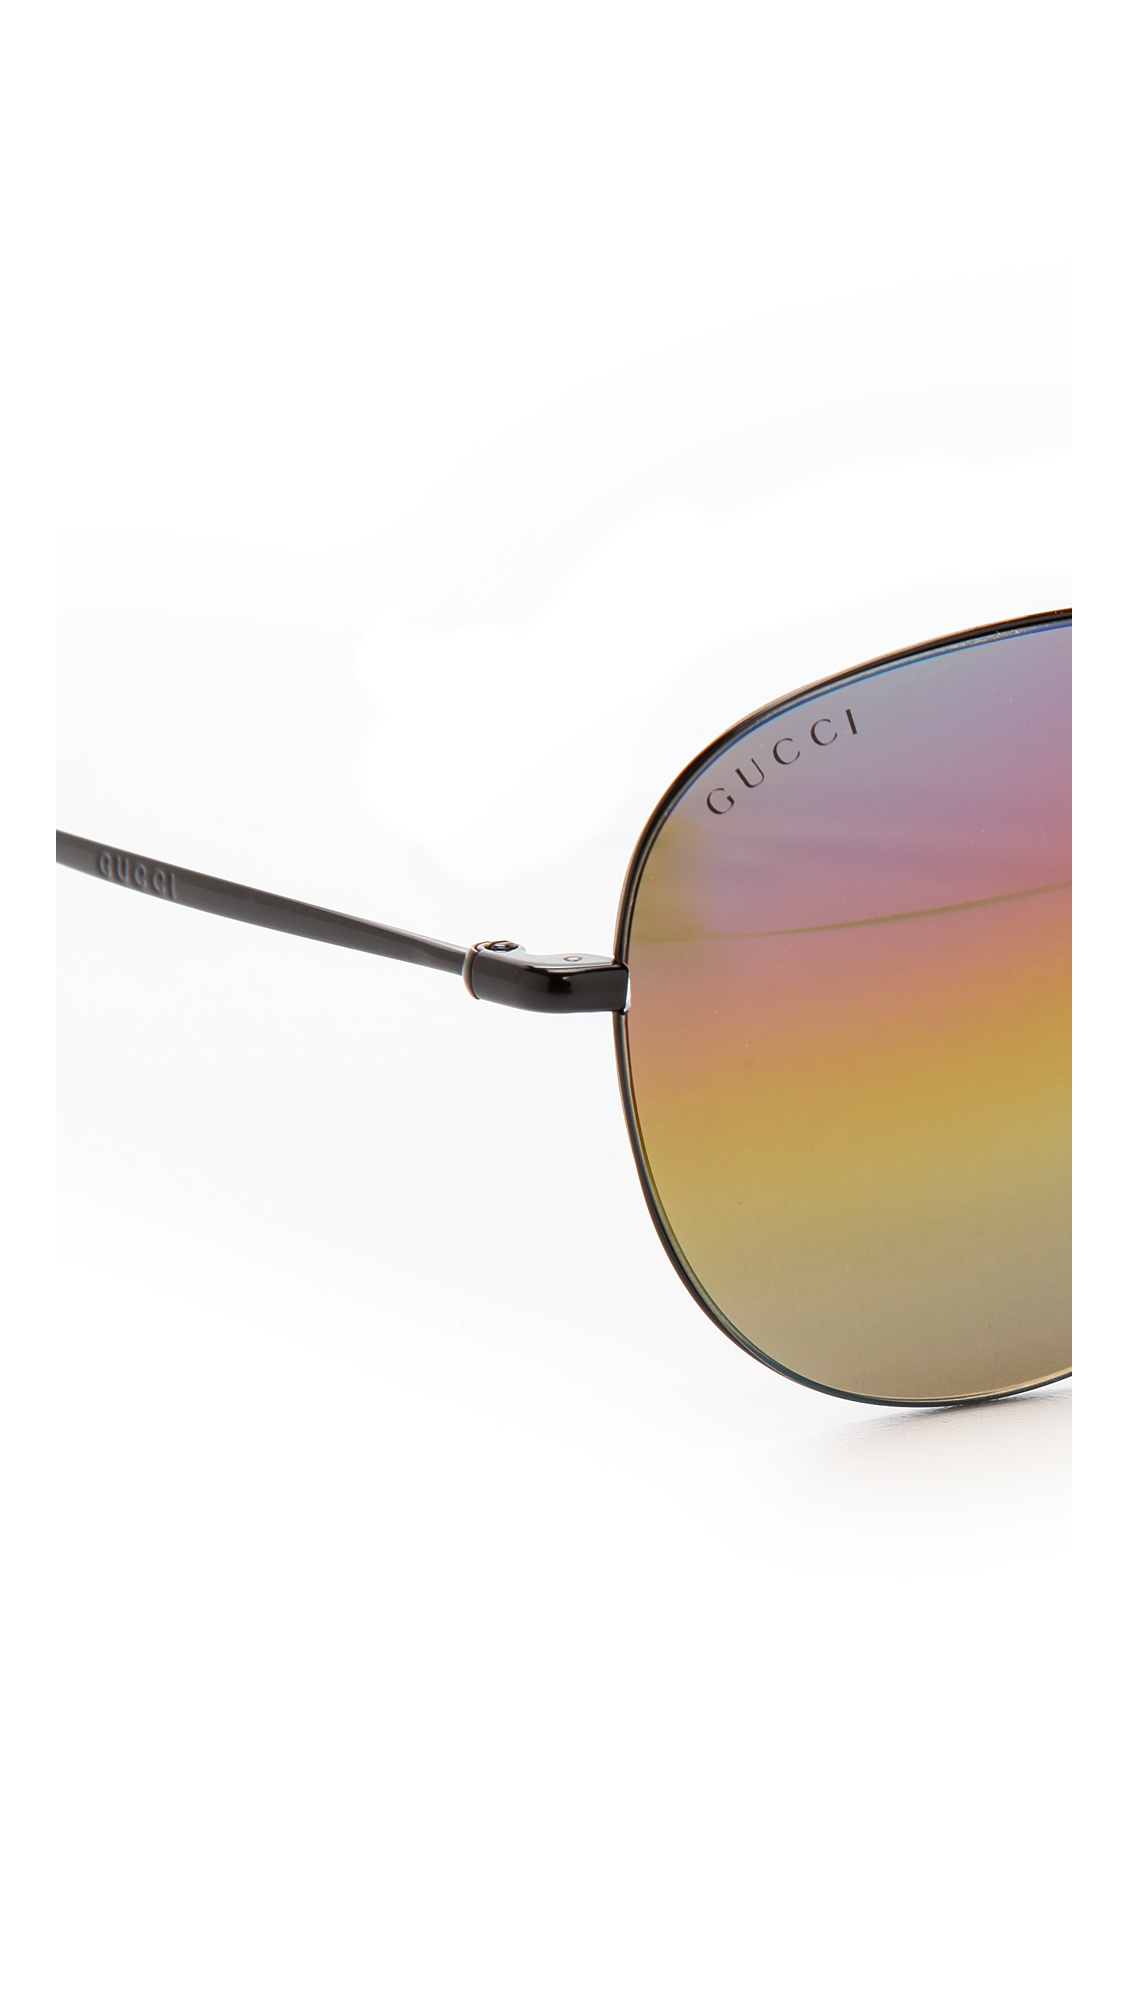 Gucci Mirrored Sunglasses  gucci rainbow mirrored aviator sunglasses shiny black rainbow lyst